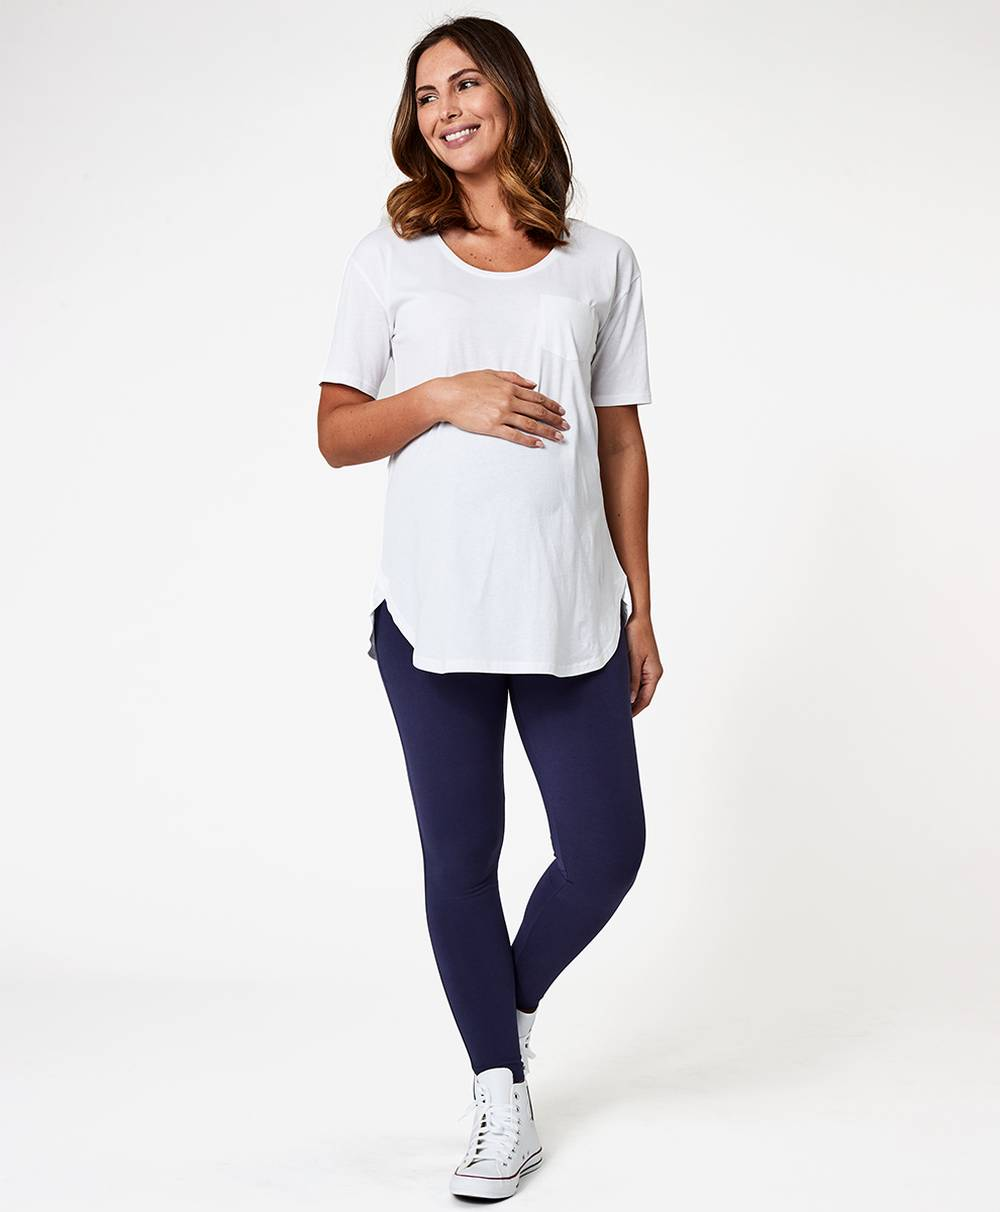 pact affordable maternity clothes